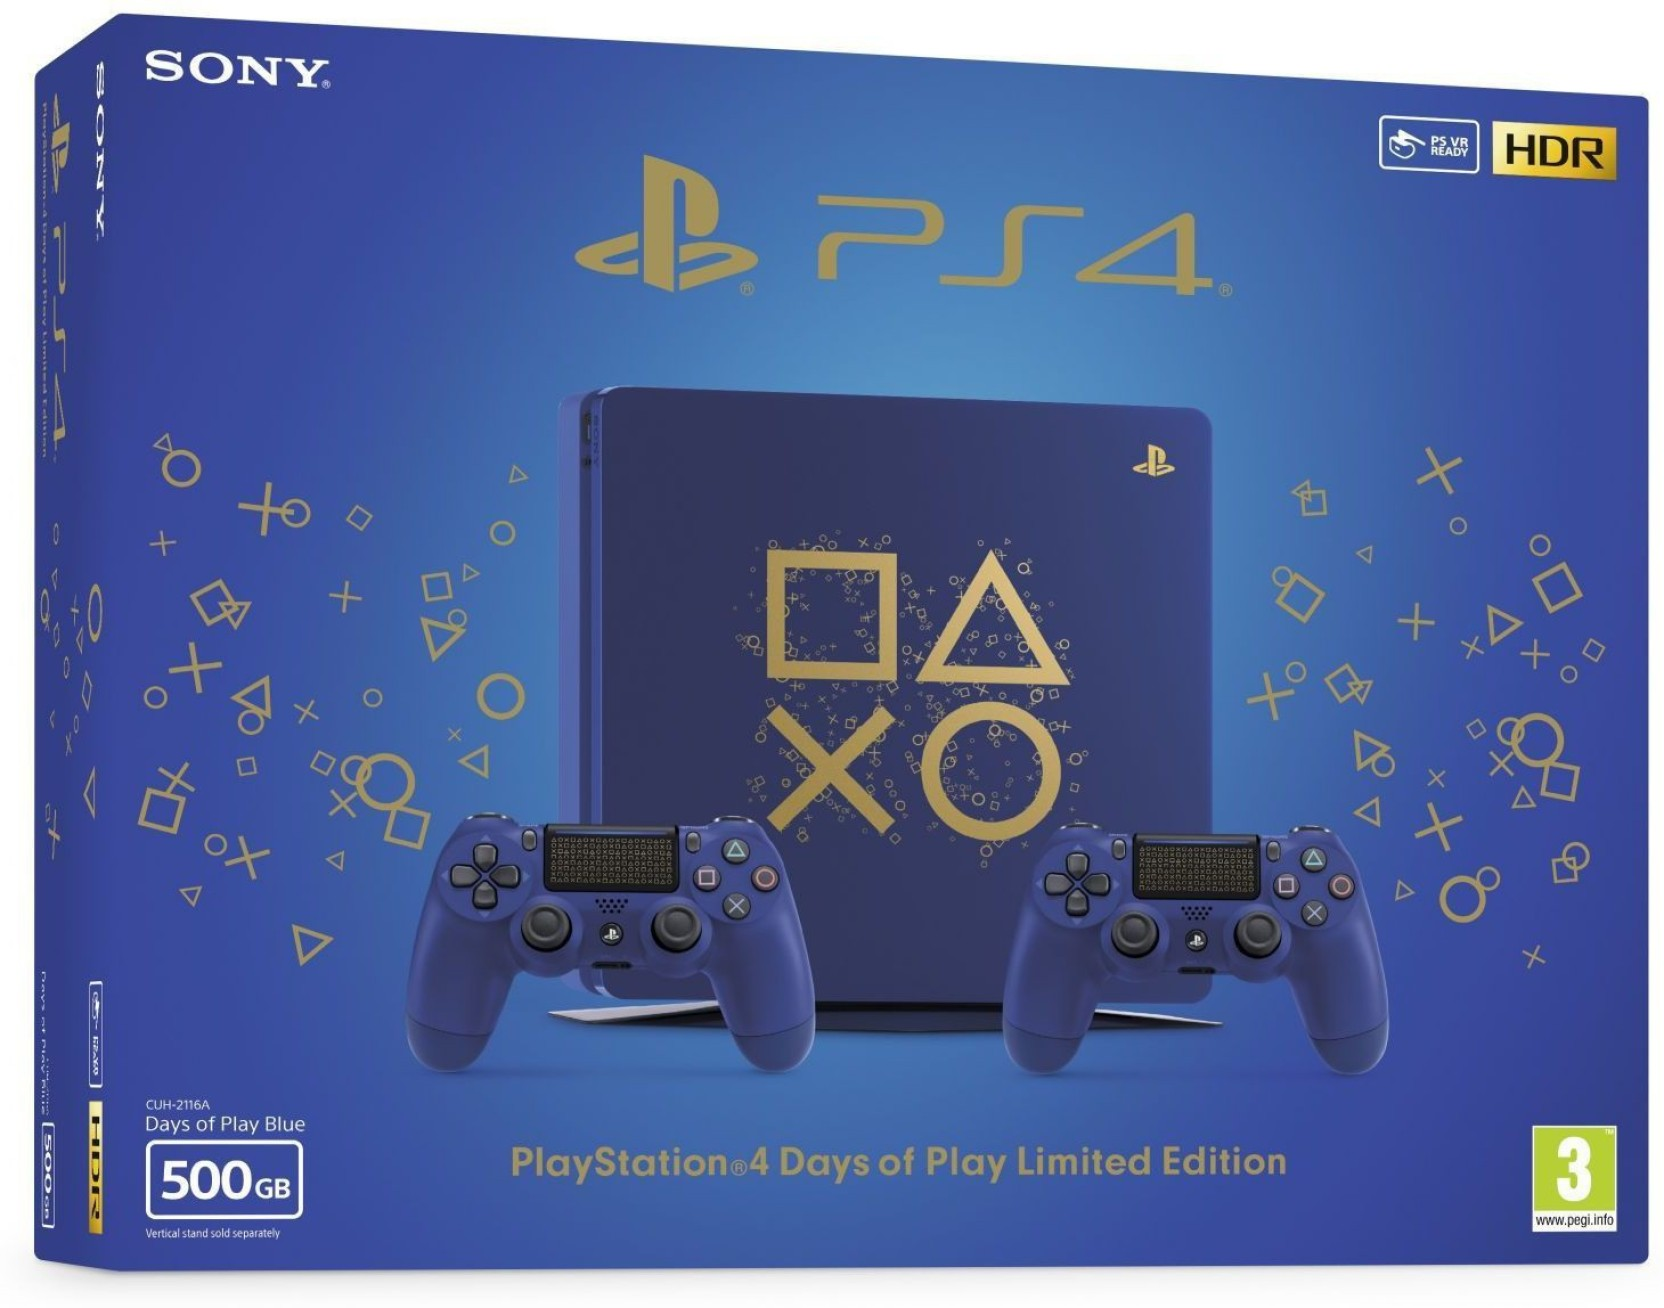 Sony PlayStation 4 (PS4) Days of Play Limited Edition 500 GB